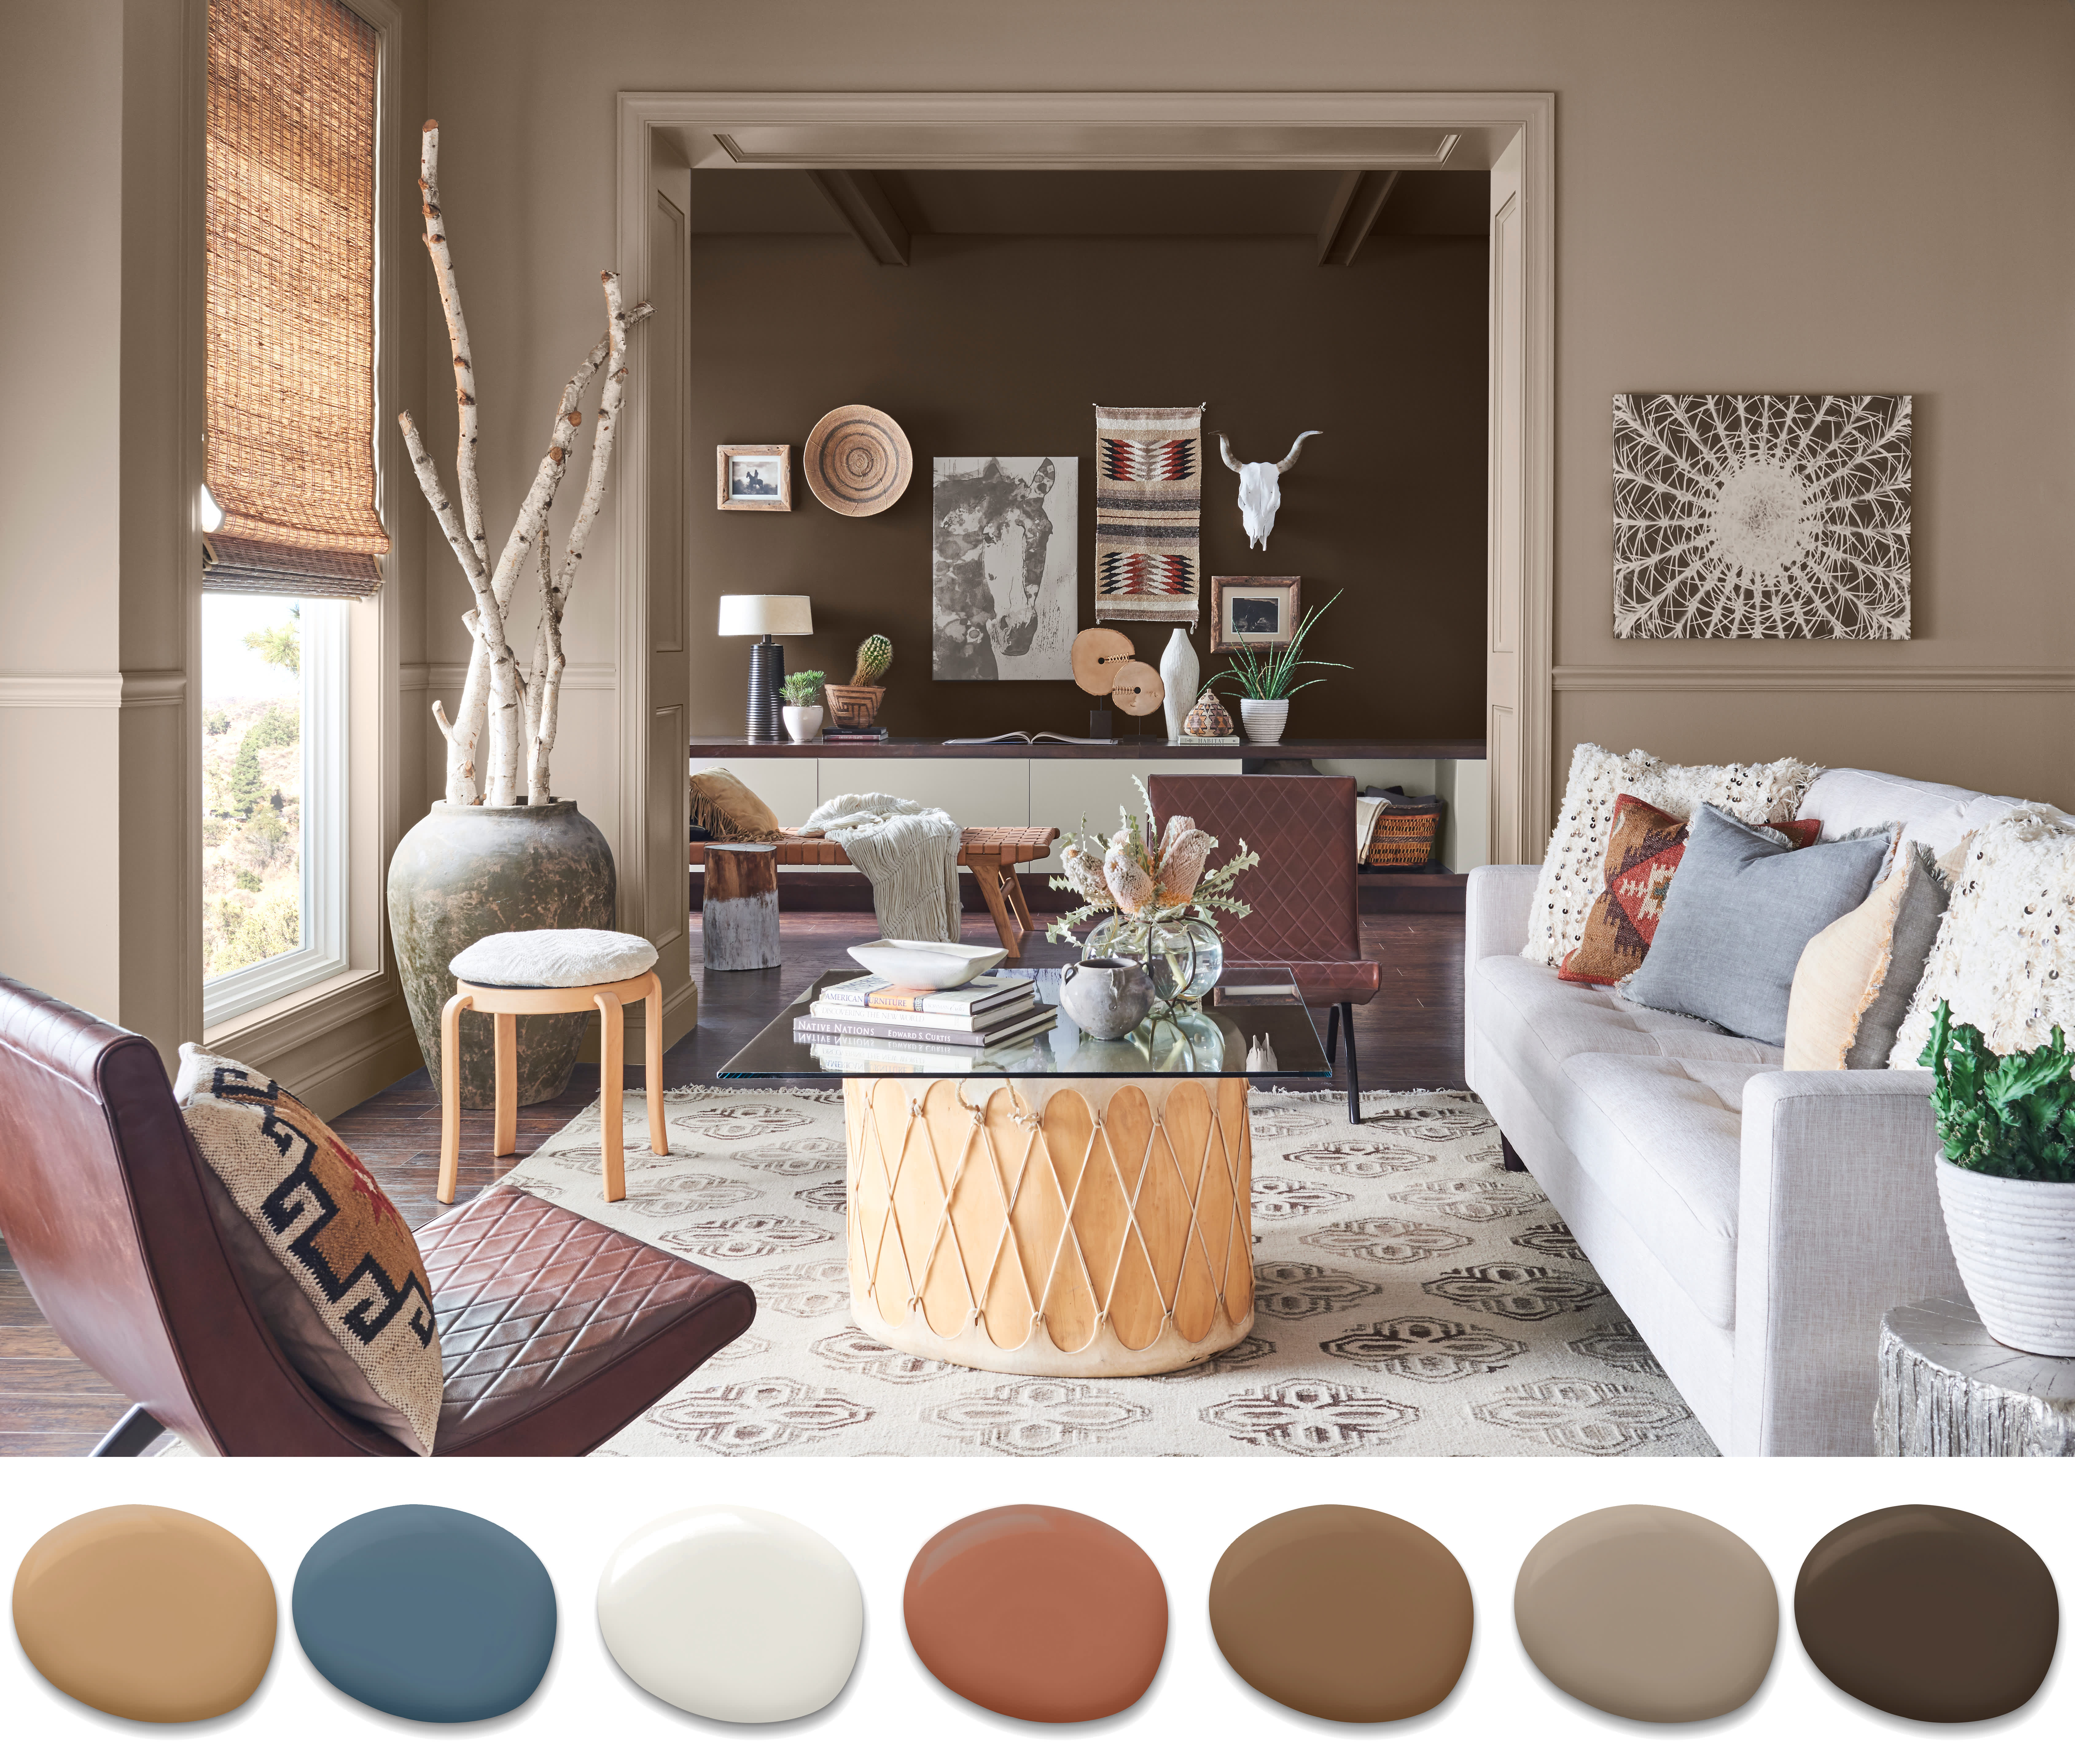 Sherwin williams most popular color trends for 2019 - Most popular car interior colors ...